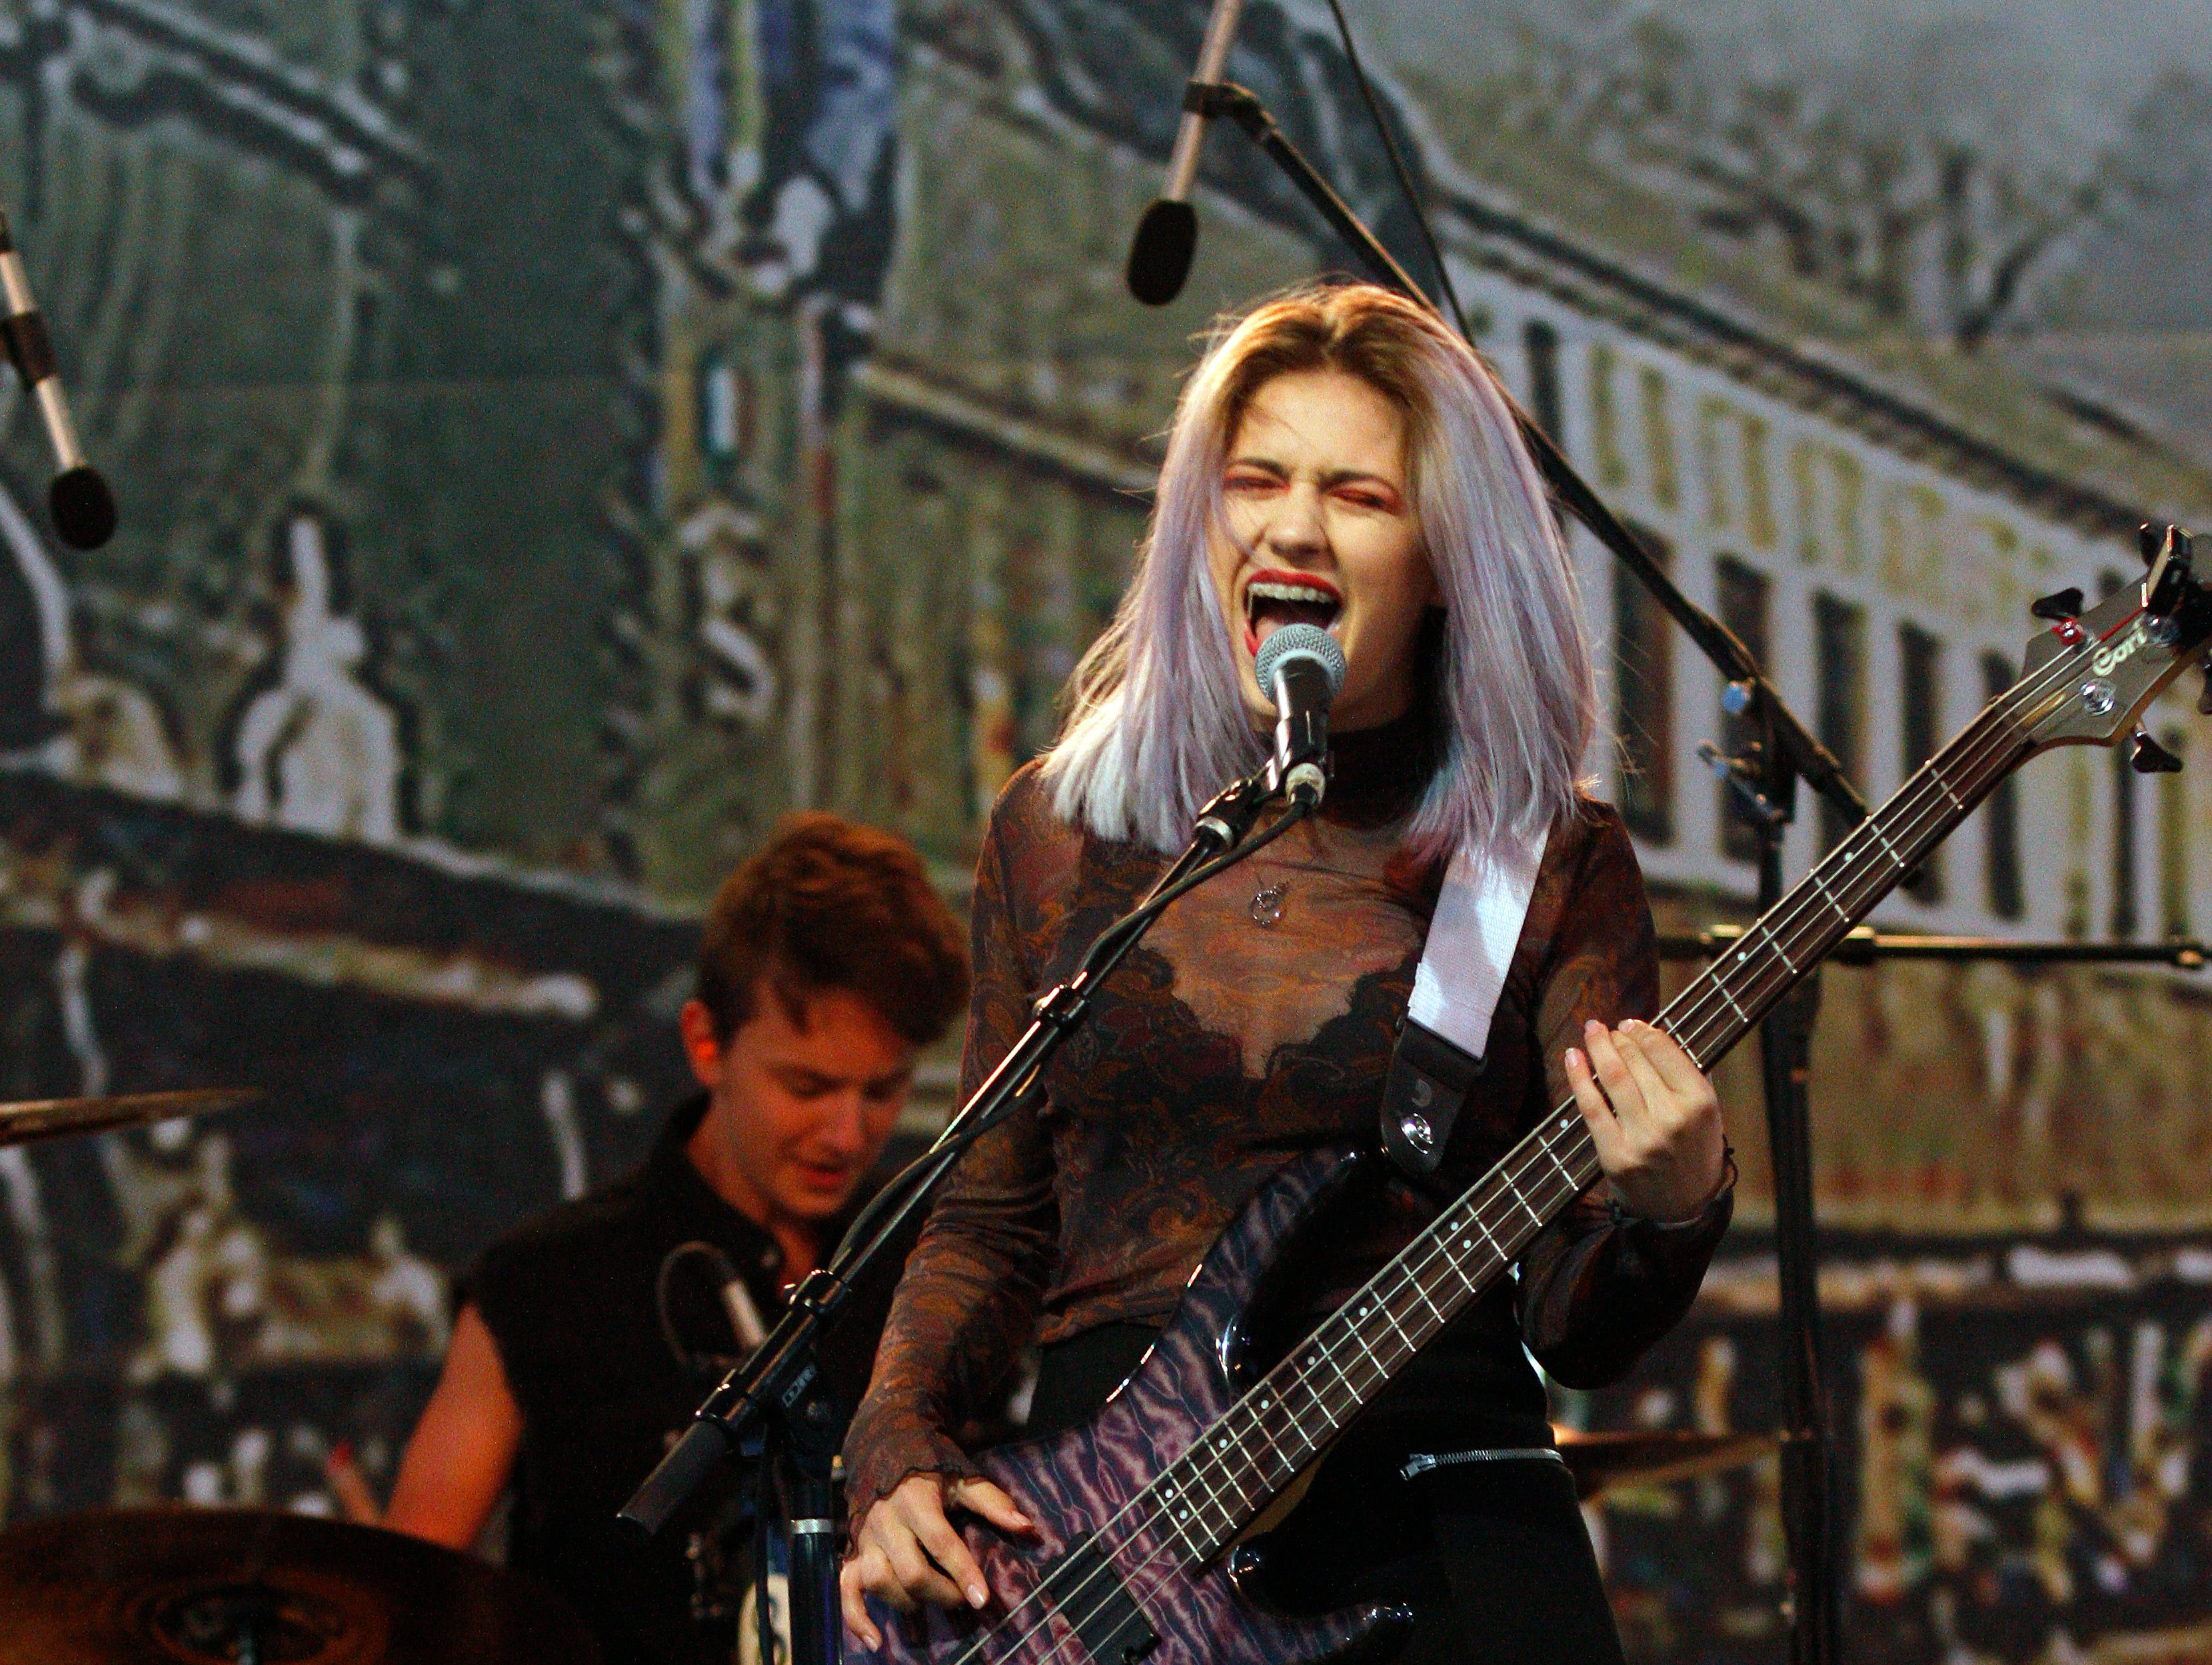 Singer and bassist Ellison Thomason performs with the band Stereo Fidelity  during the opening night of the four-day Conejo Valley Days festival in Thousand Oaks on Thursday.